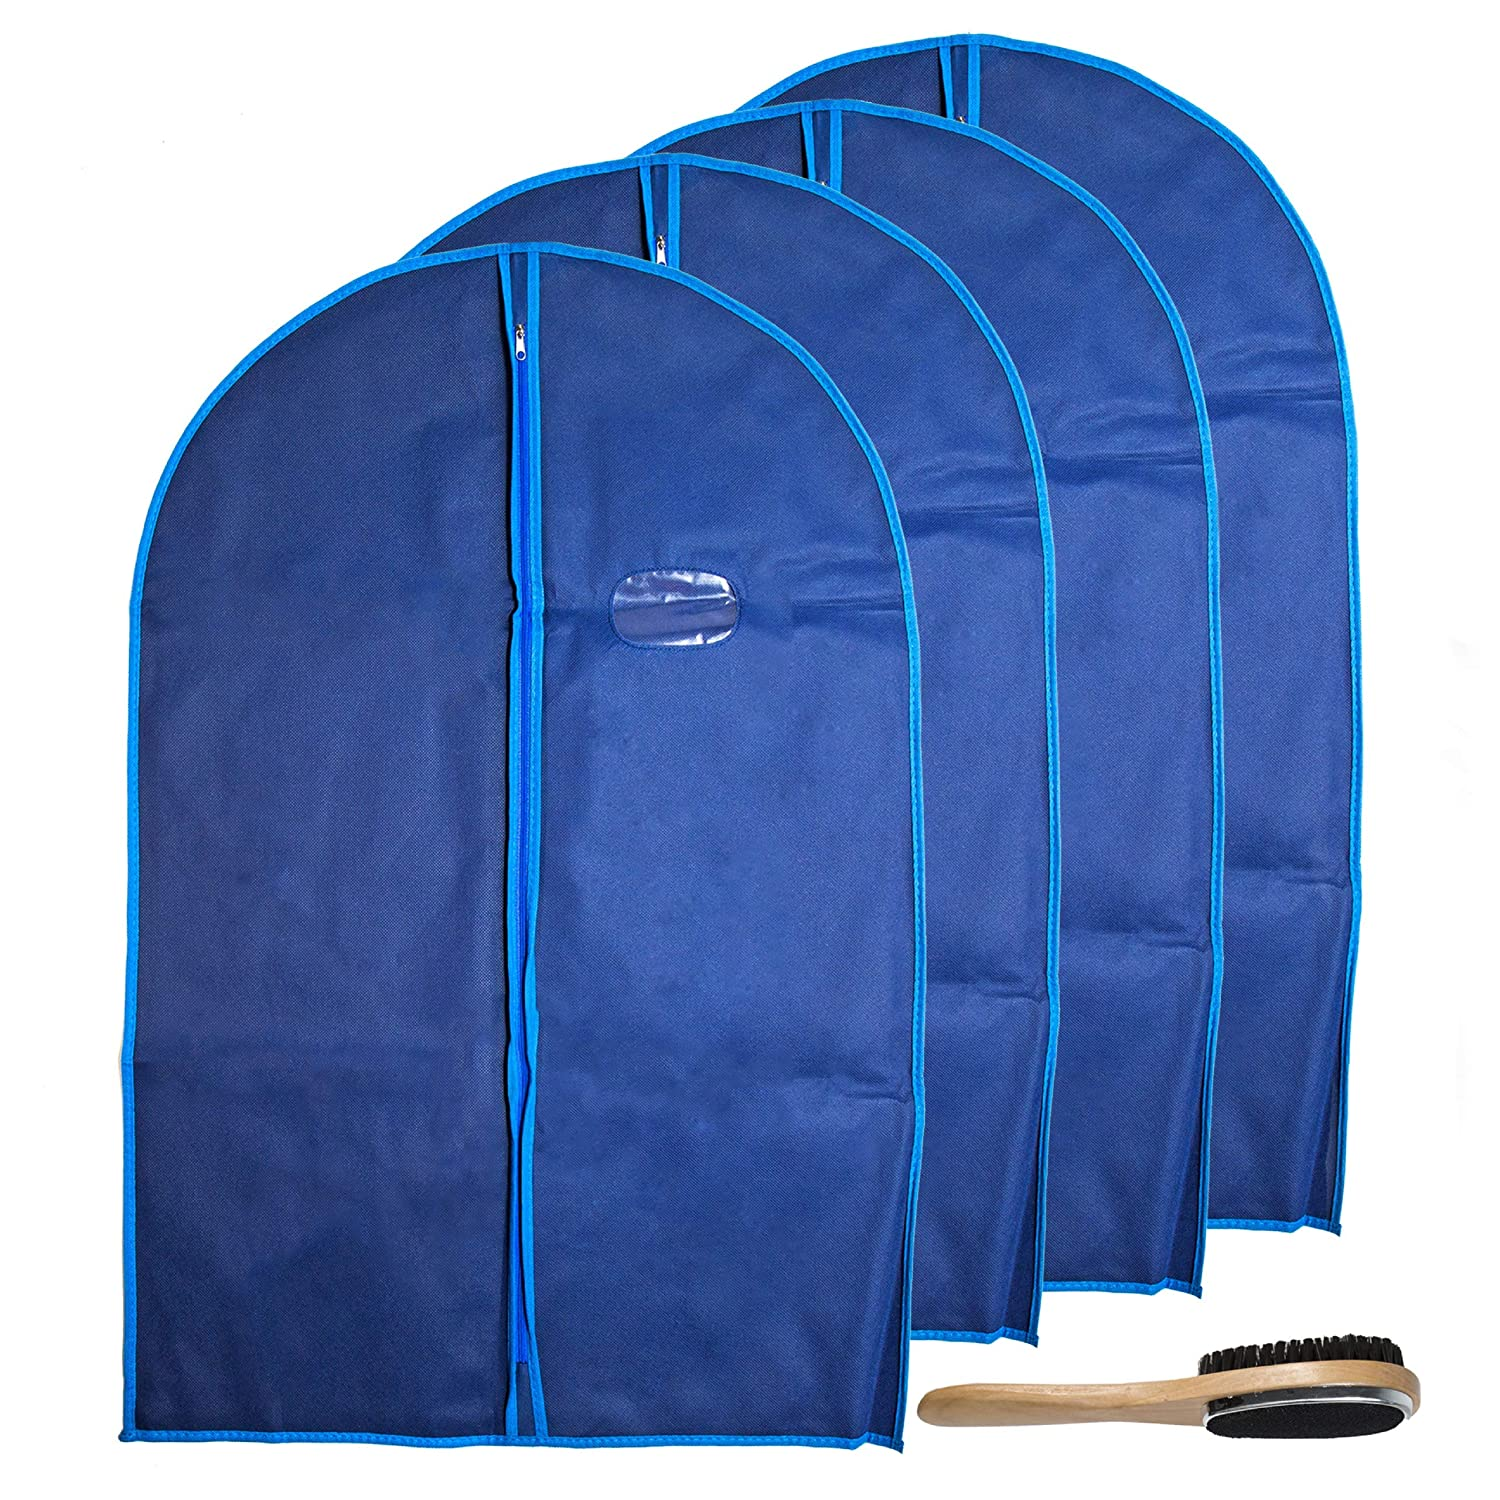 Garment Bags by Home Zone - 4 Pack of Breathable Garment Suit Bag Clothes Covers - Protect Garments, Suits and Costumes - Ideal for Mens Travel & Clothing Protection - Navy & Blue Finish - Medium Size (90cms*60cm) ZH-BGC-BLU-K4